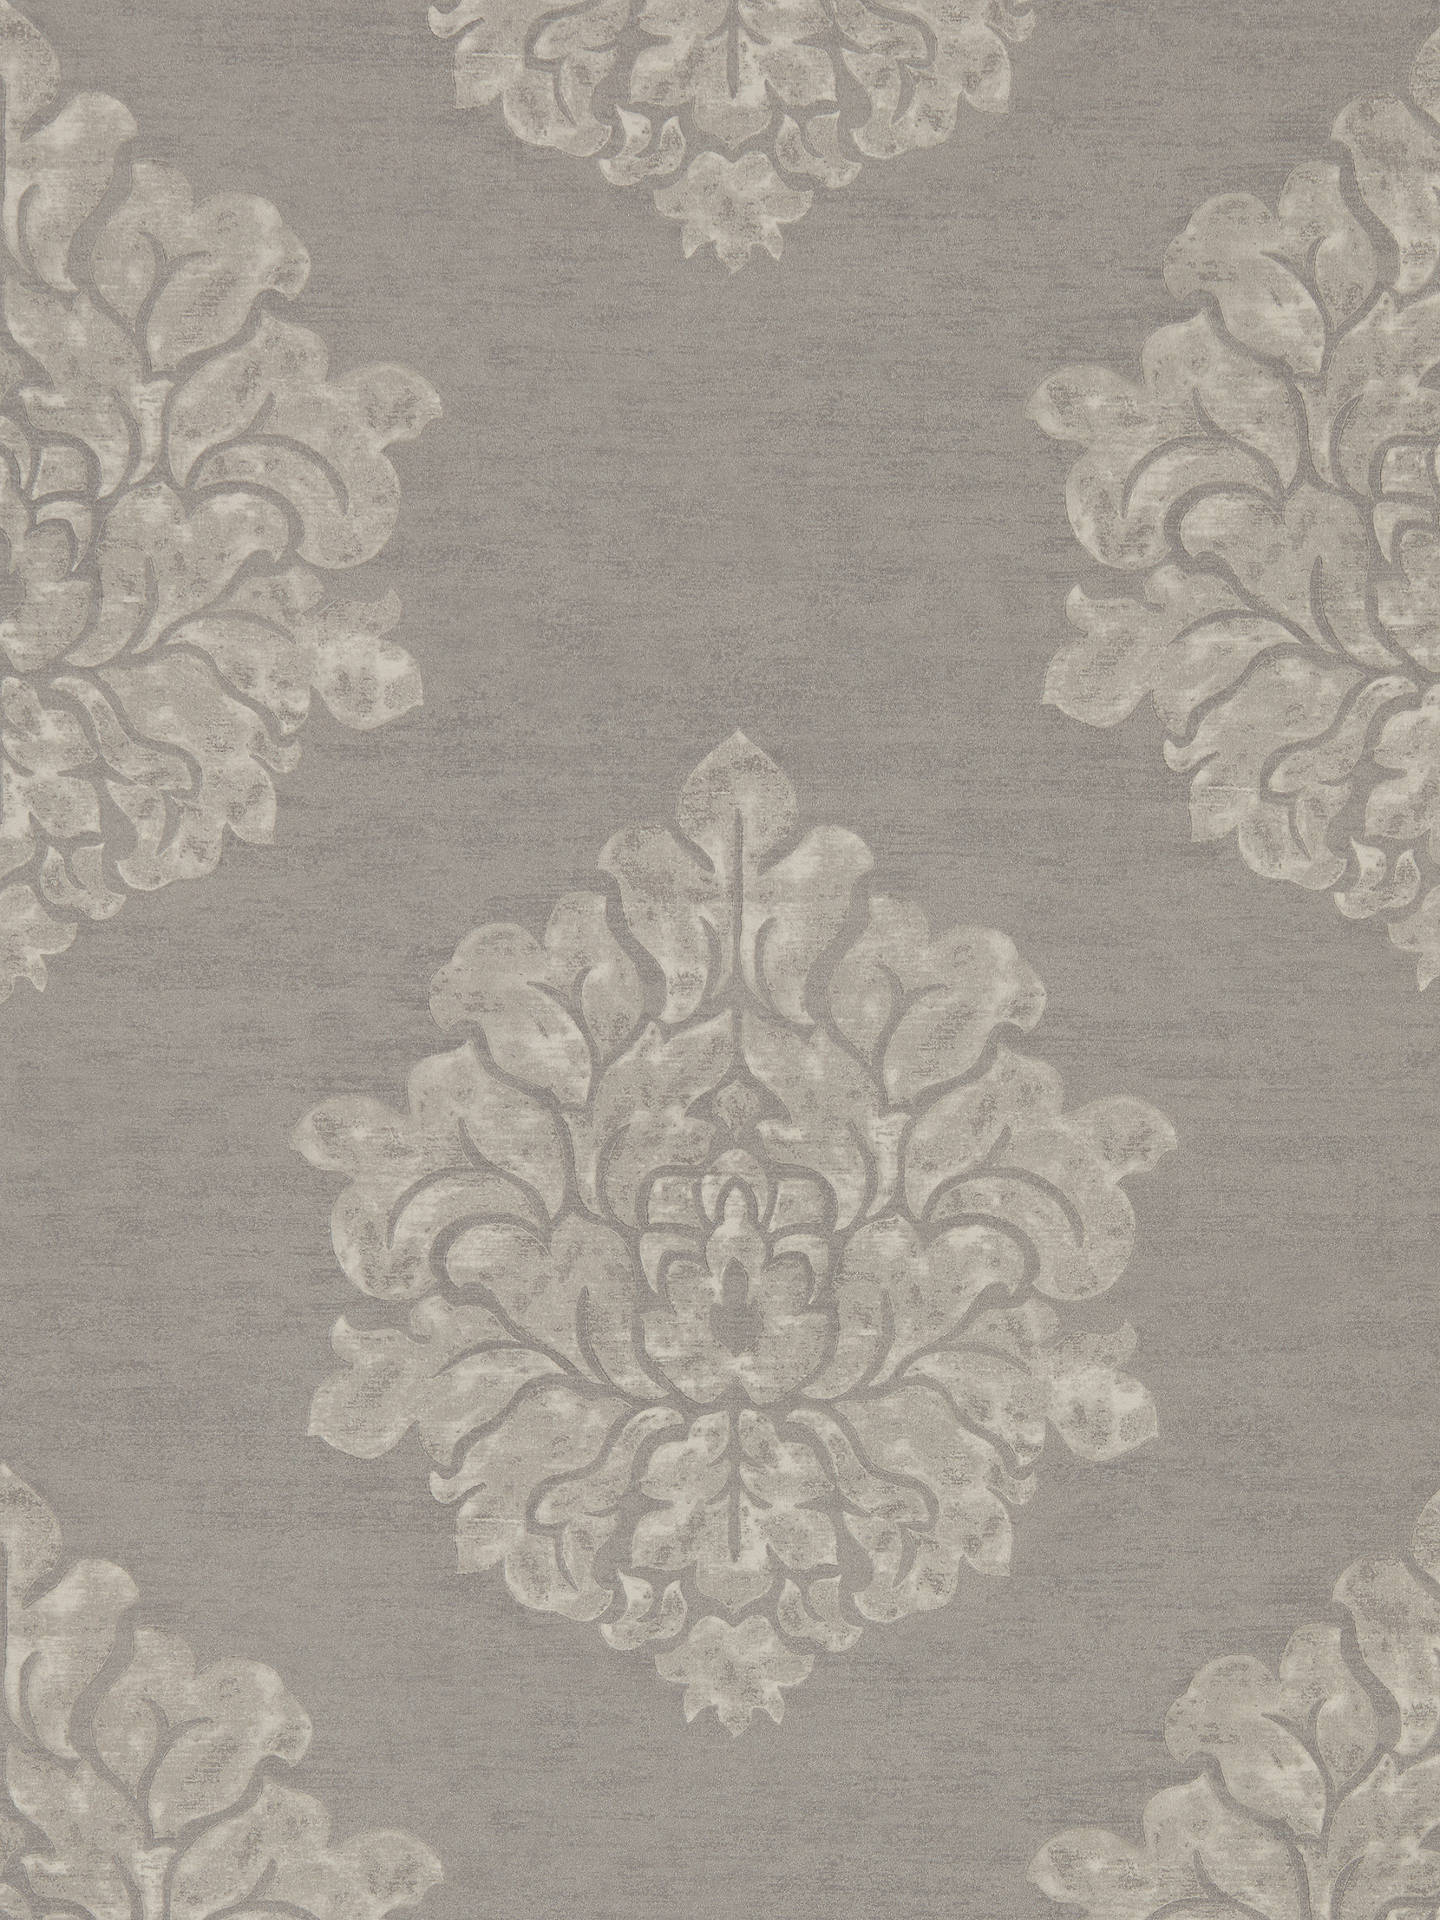 Buy Sanderson Waterperry Laurie Wallpaper, Charcoal 216270 Online at johnlewis.com